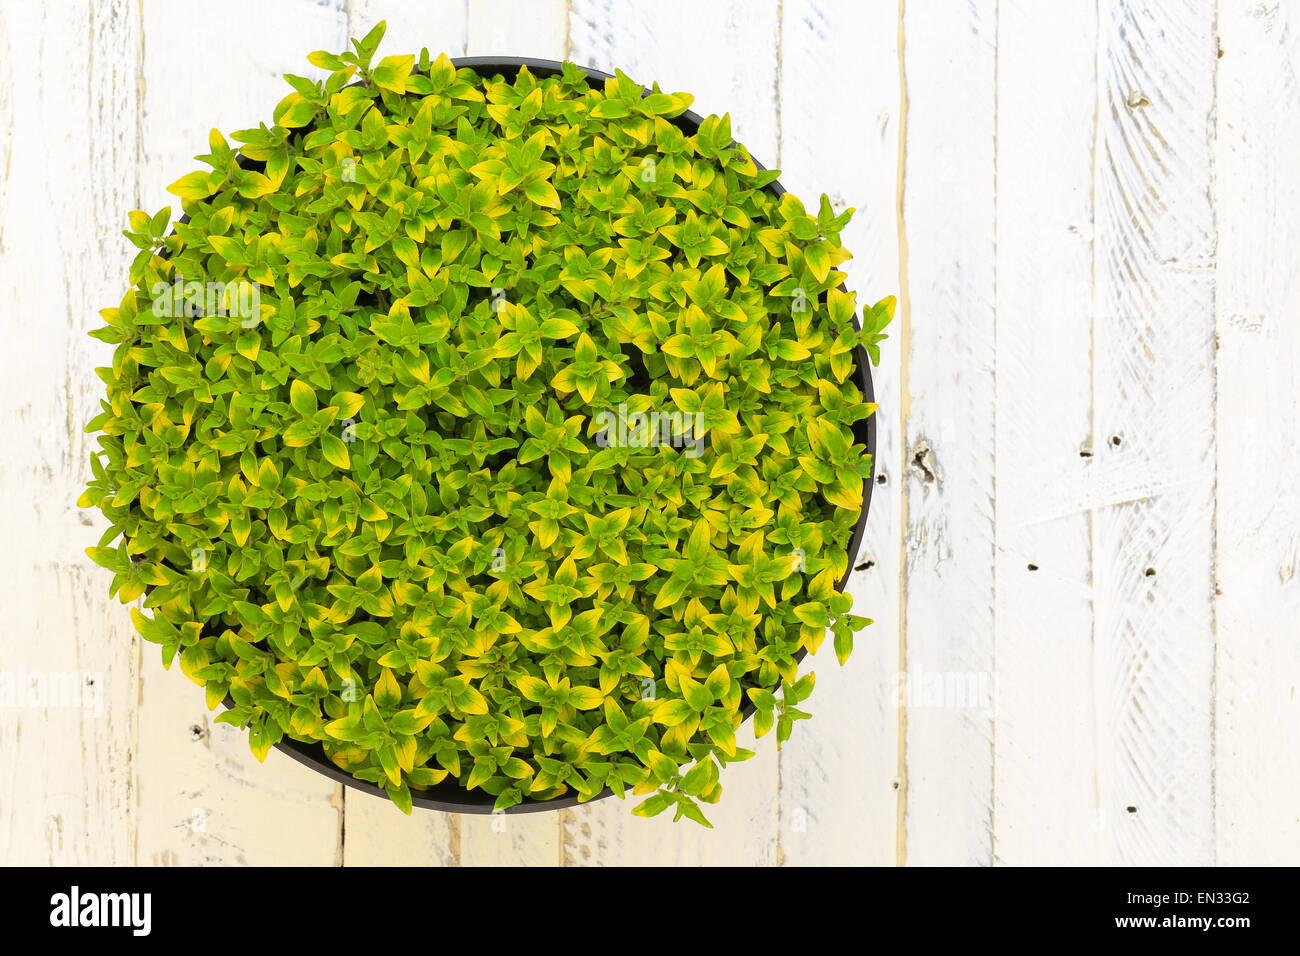 Oregano herb spicy plant with green yellow leaves (Origanum vulgare aureum) wild marjoram in black plant pot on - Stock Image